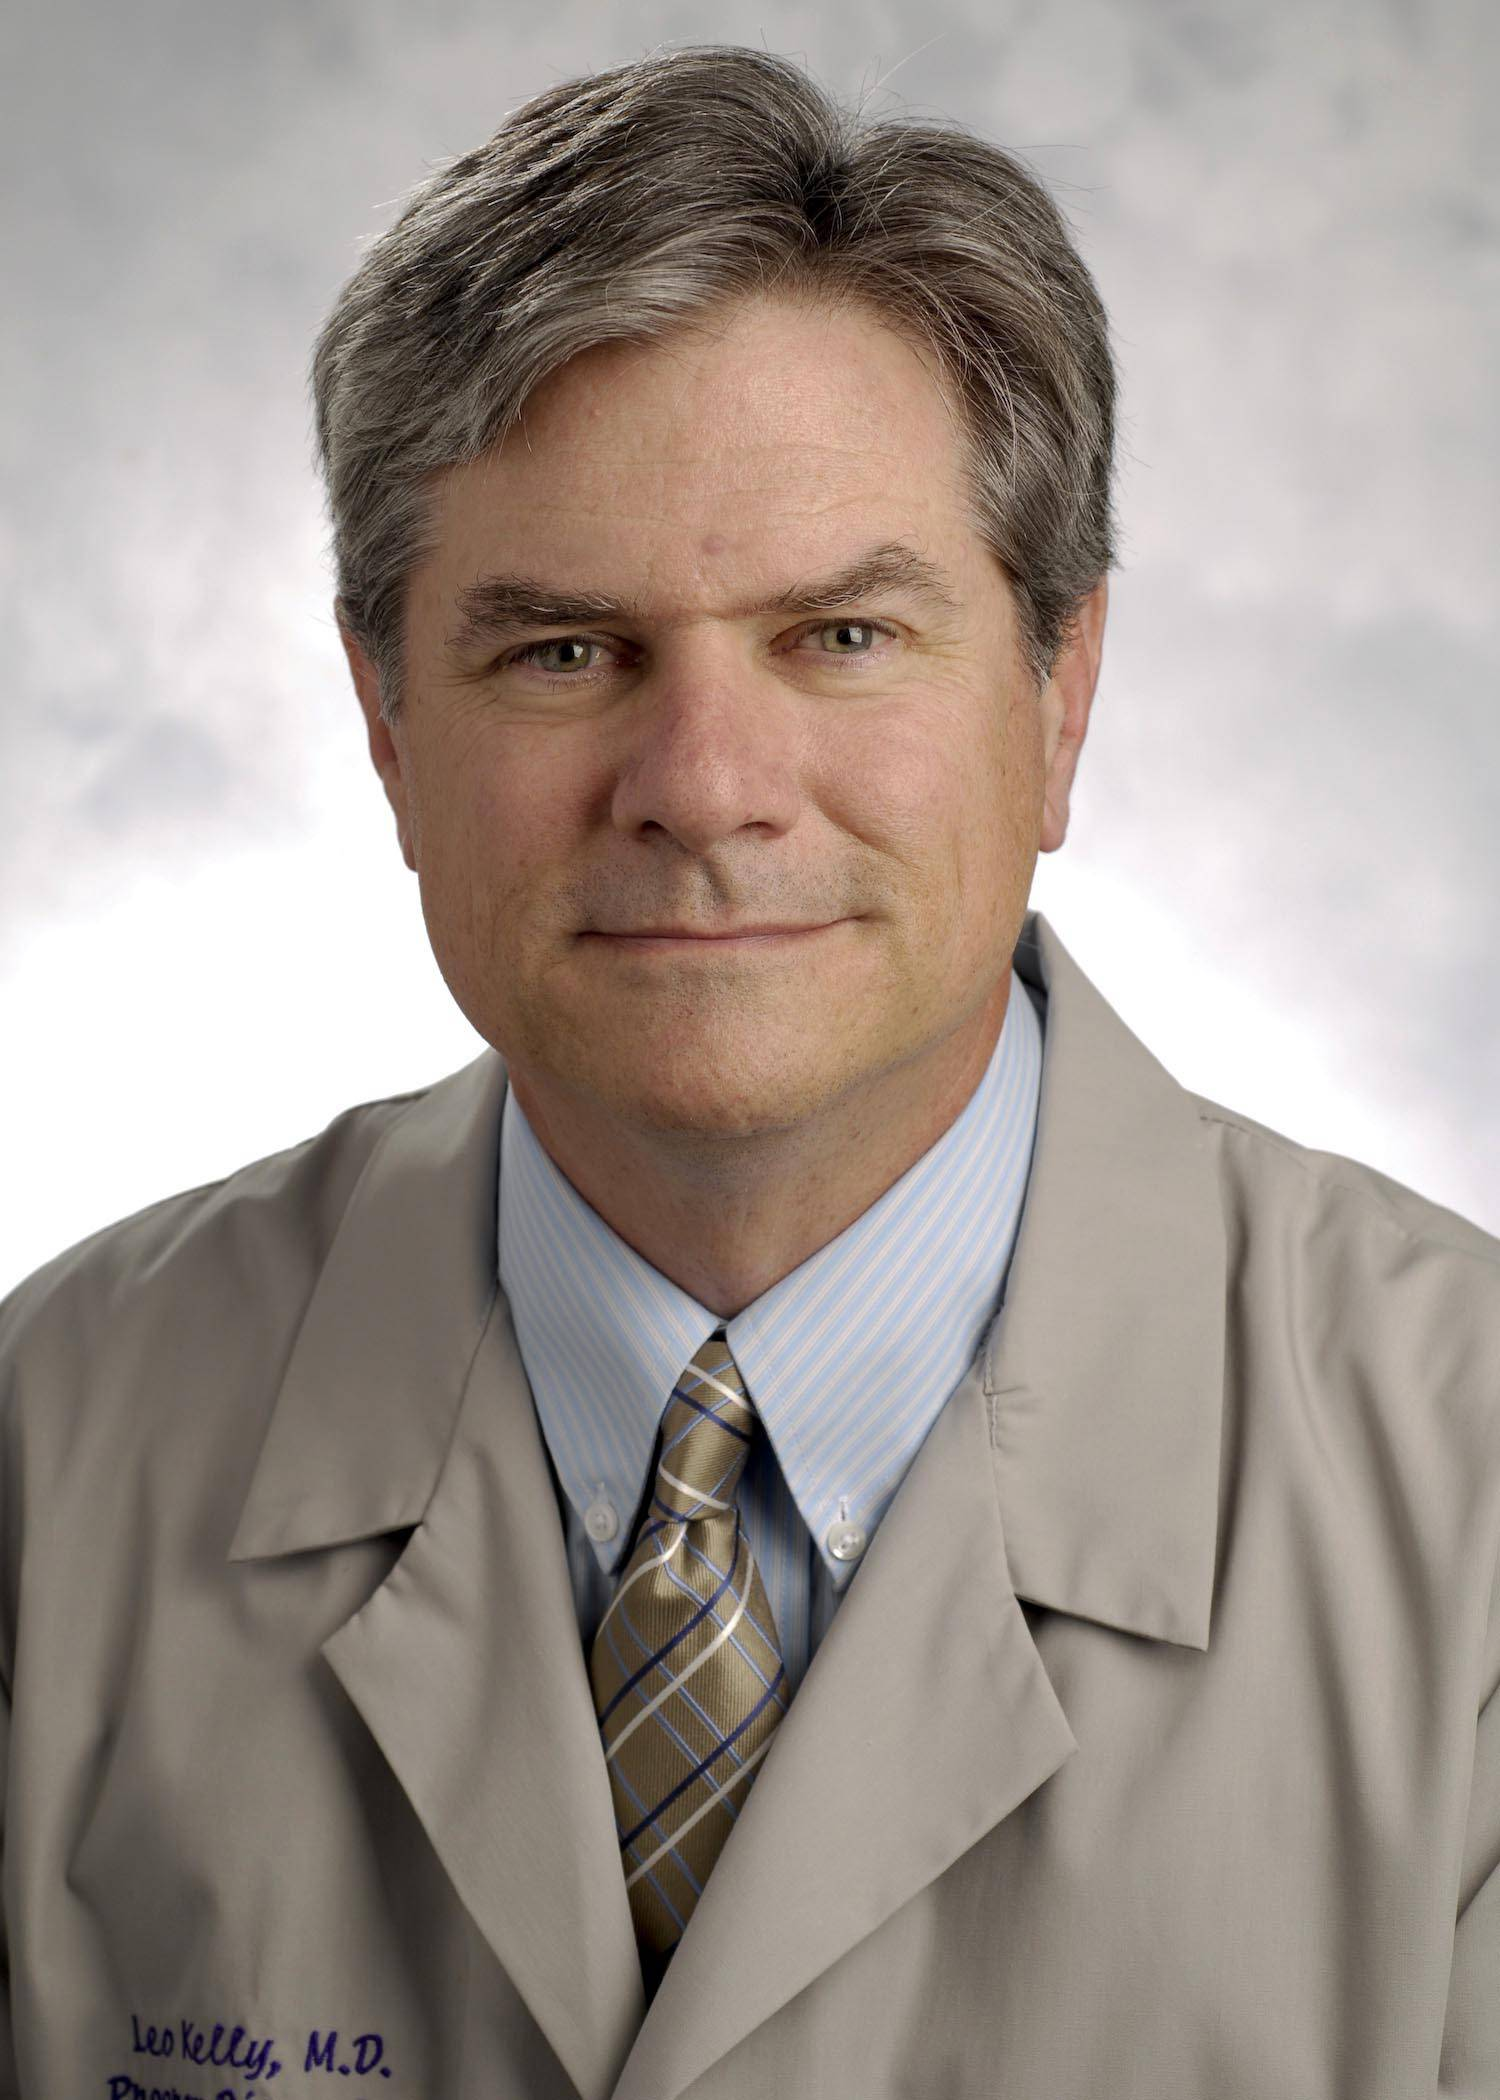 Leo Kelly, MD